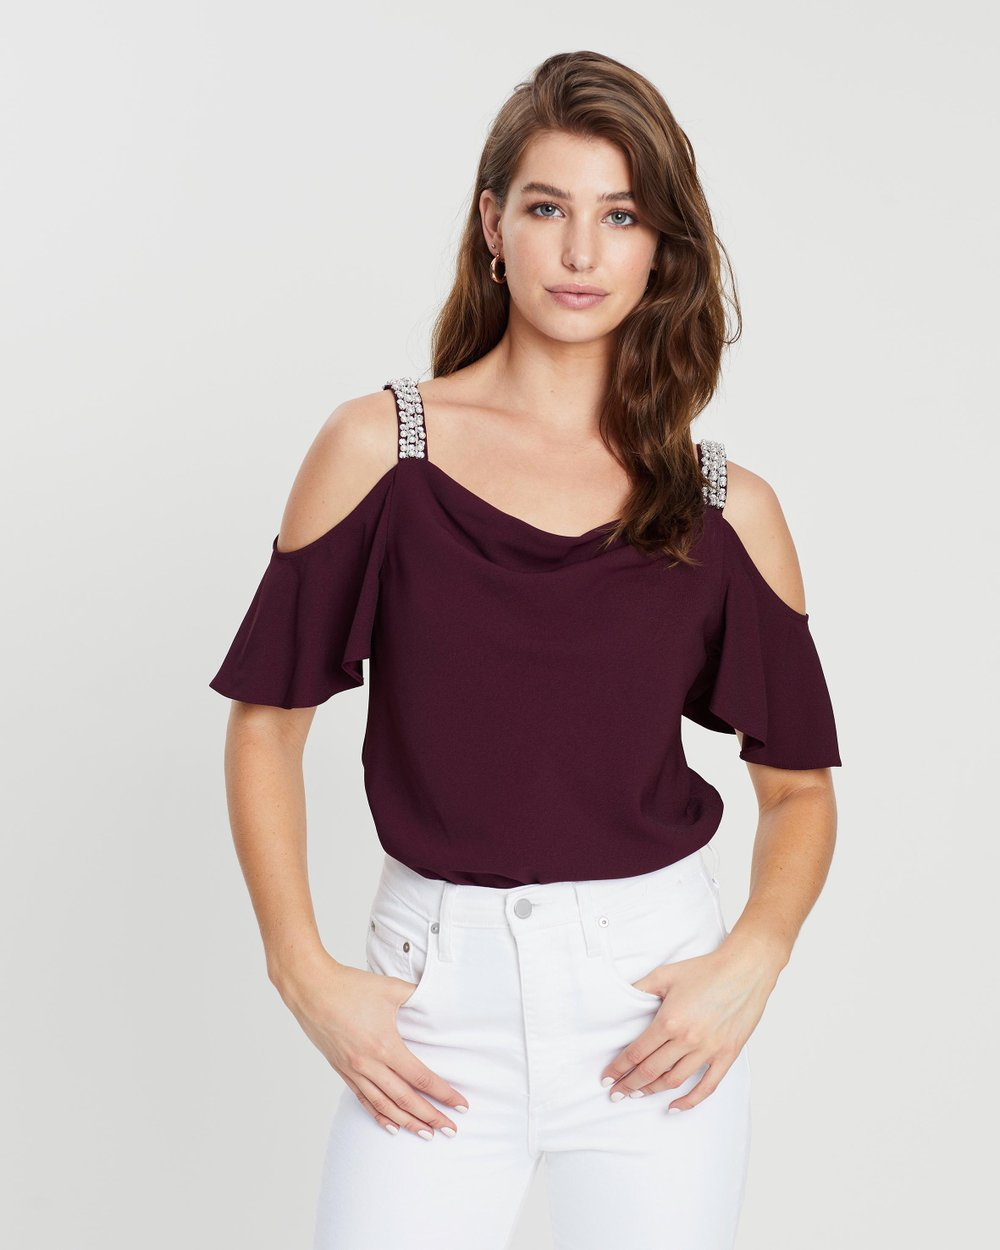 653d641b32a4d Embroidered Pearl Cold Shoulder Top by Dorothy Perkins Online